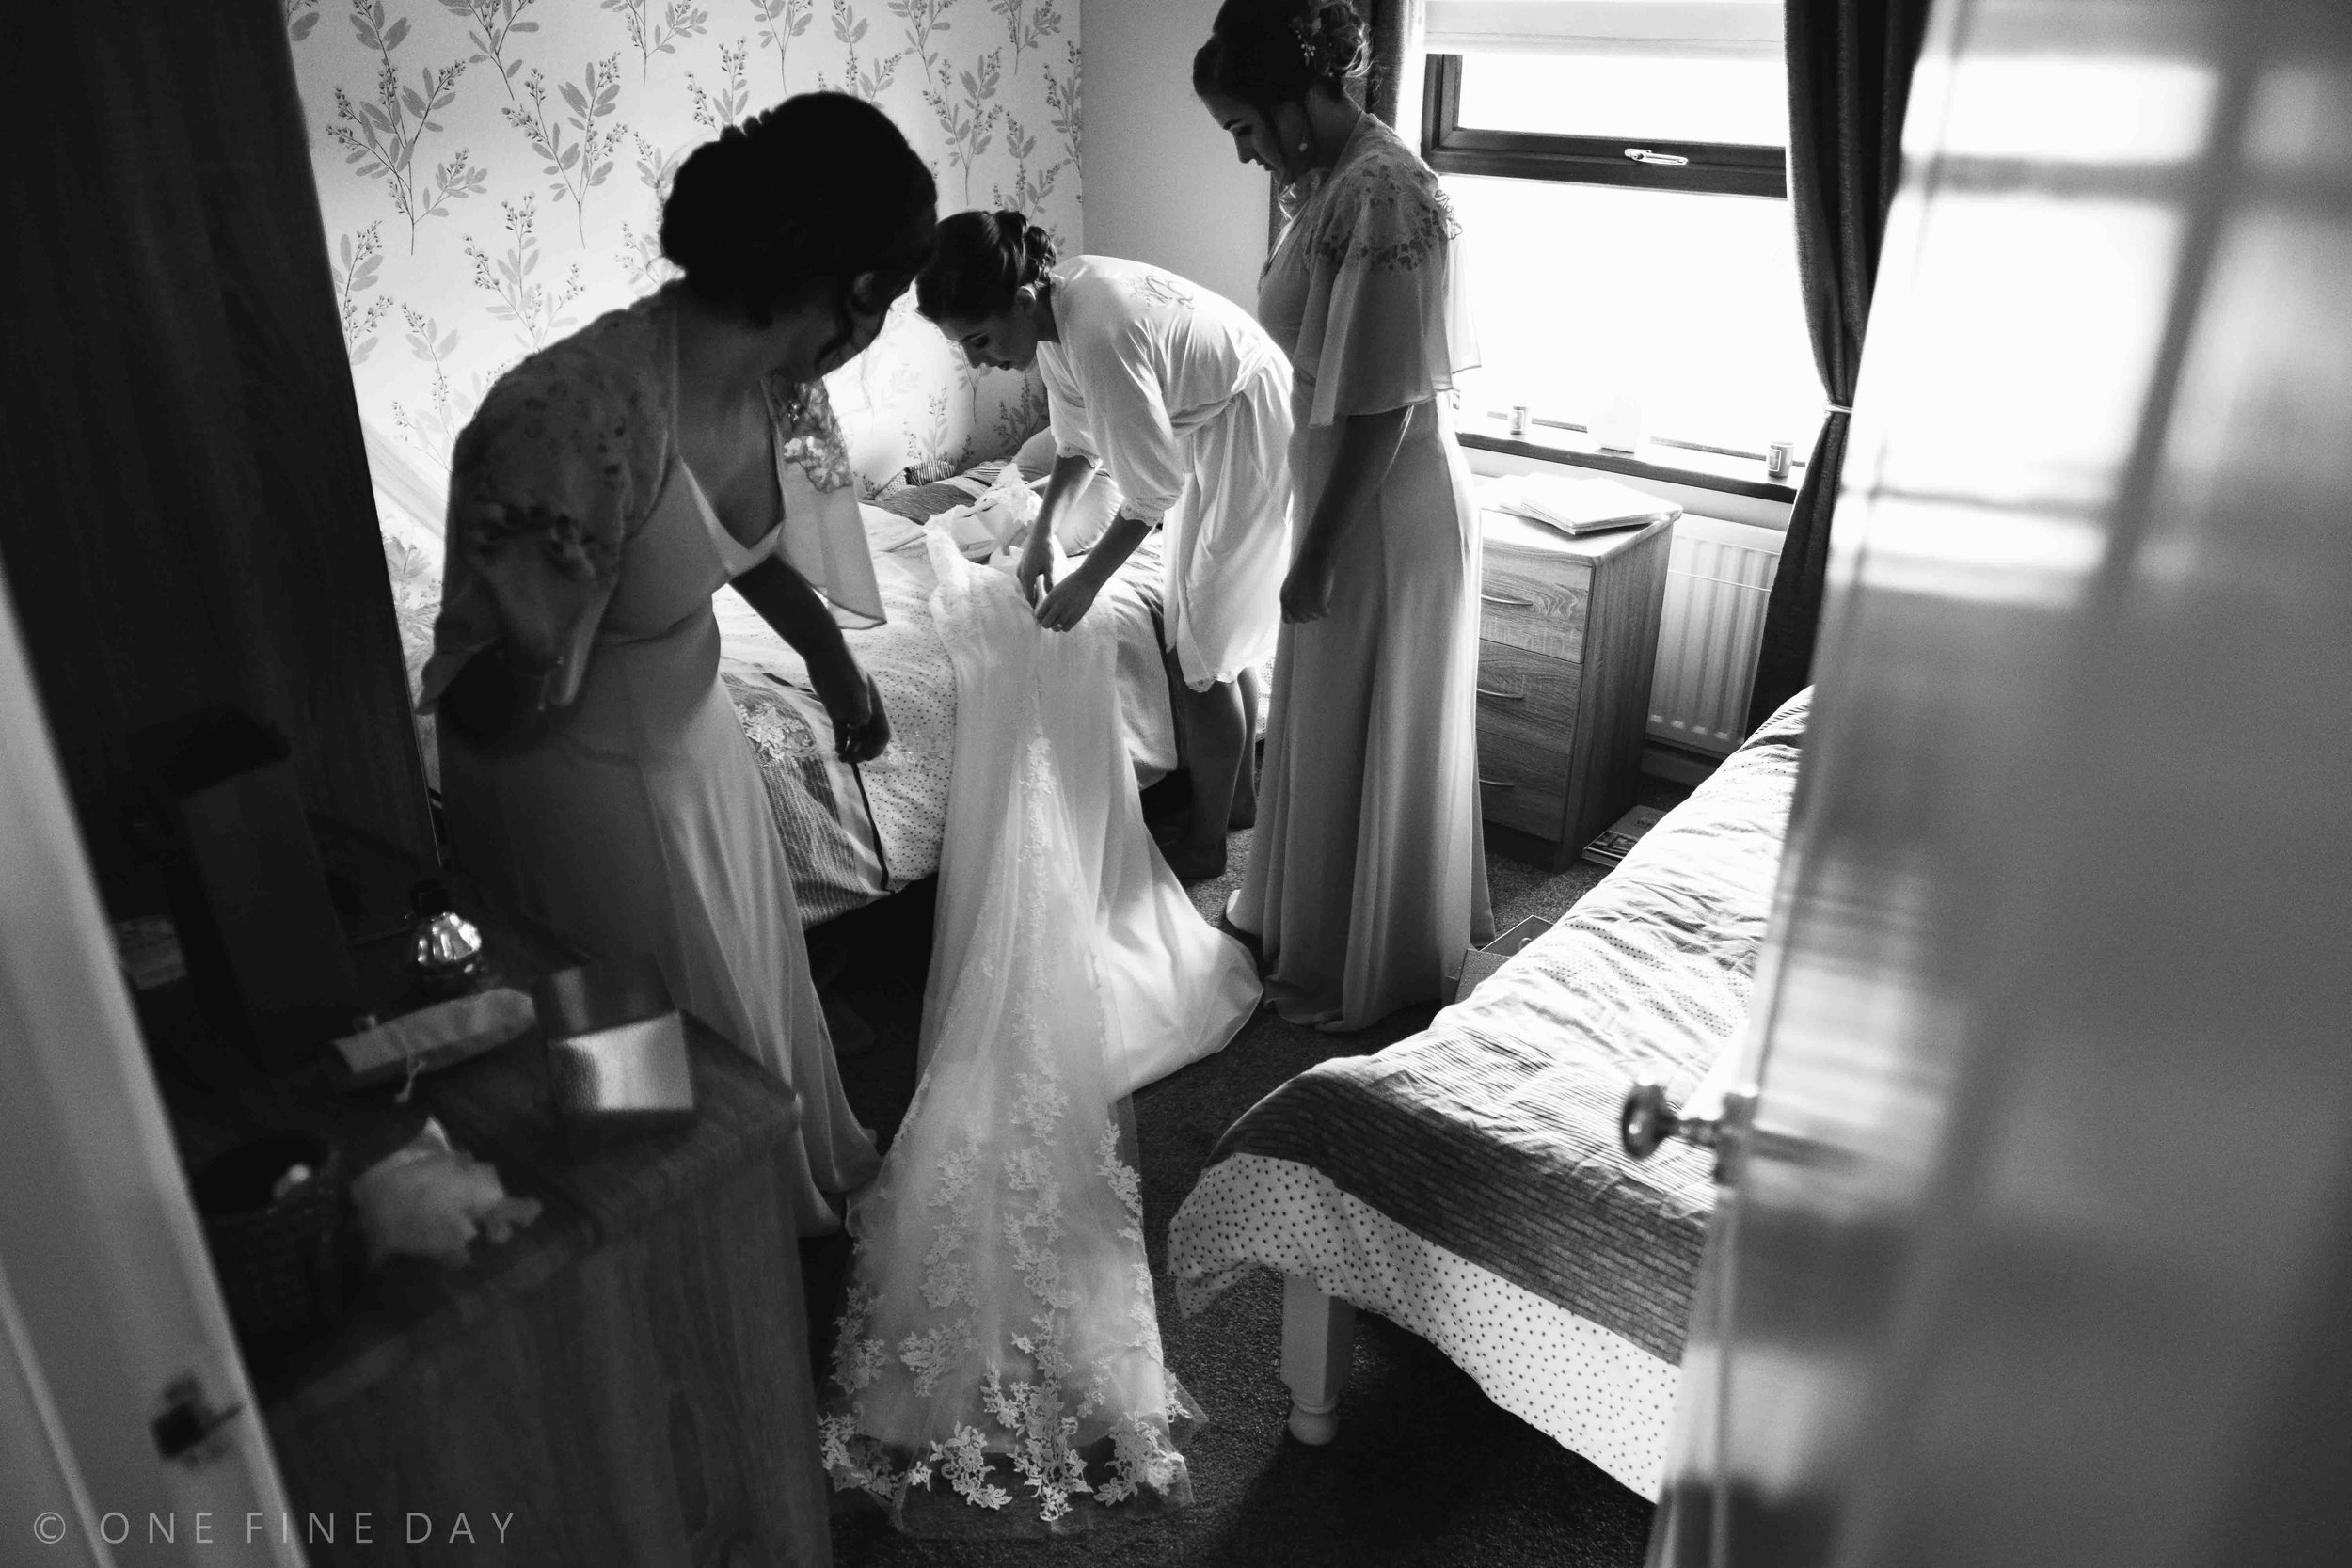 Bride getting ready in documentary style wedding image